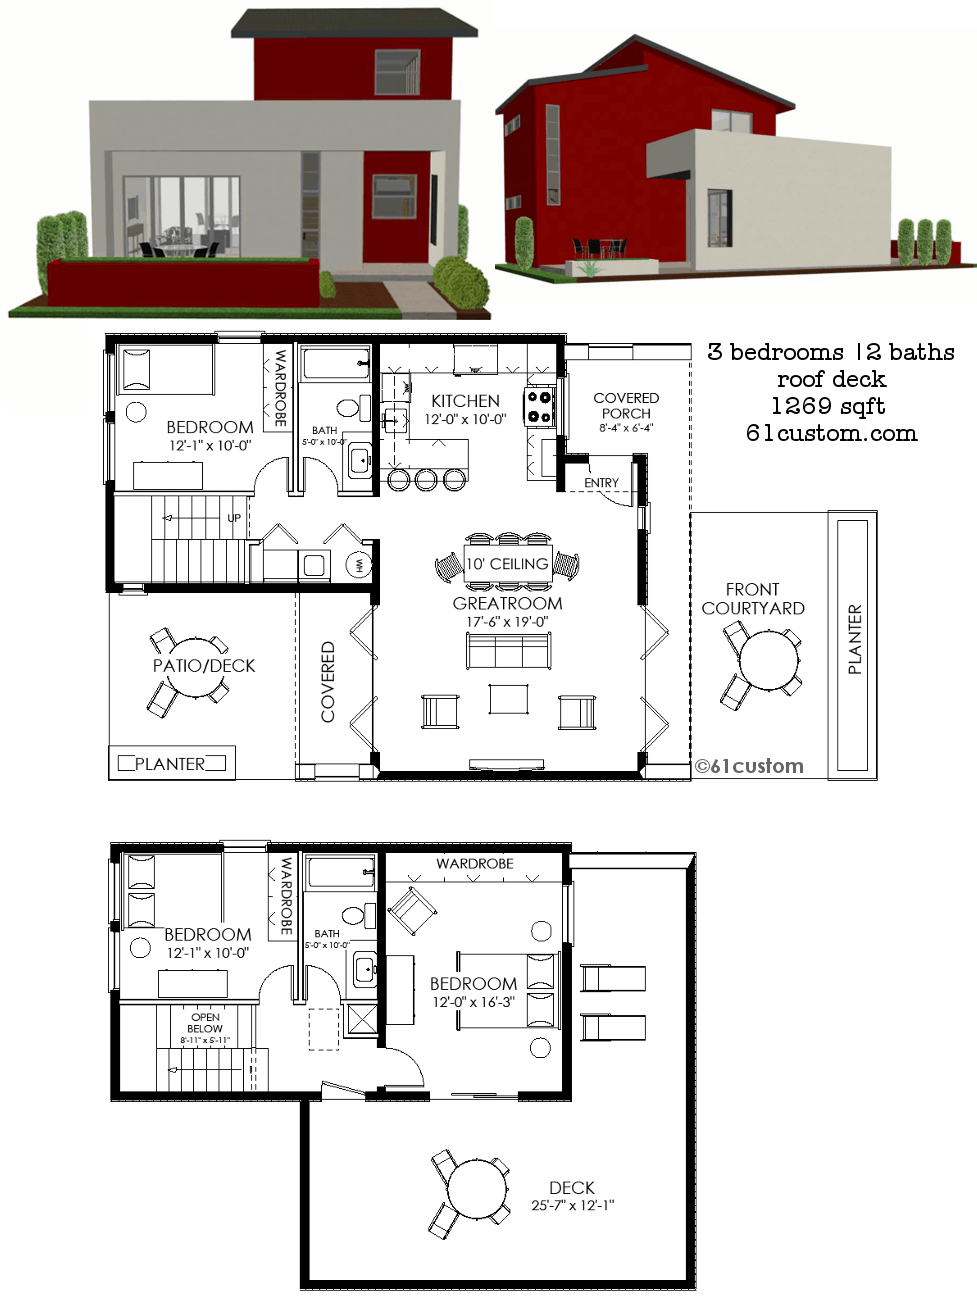 Contemporary Small House Plan on stairs for seniors, floor plans for seniors, small gifts for seniors, small mobile home floor plans, small house in the woods, small living, small one bedroom house, furniture for seniors, painting for seniors, house designs for seniors, small one-bedroom floor plans, small dogs for seniors, sunroom for seniors, pocket neighborhoods for seniors, landscaping for seniors, pulse rate chart for seniors, small log home floor plans, books for seniors, small open floor plans,